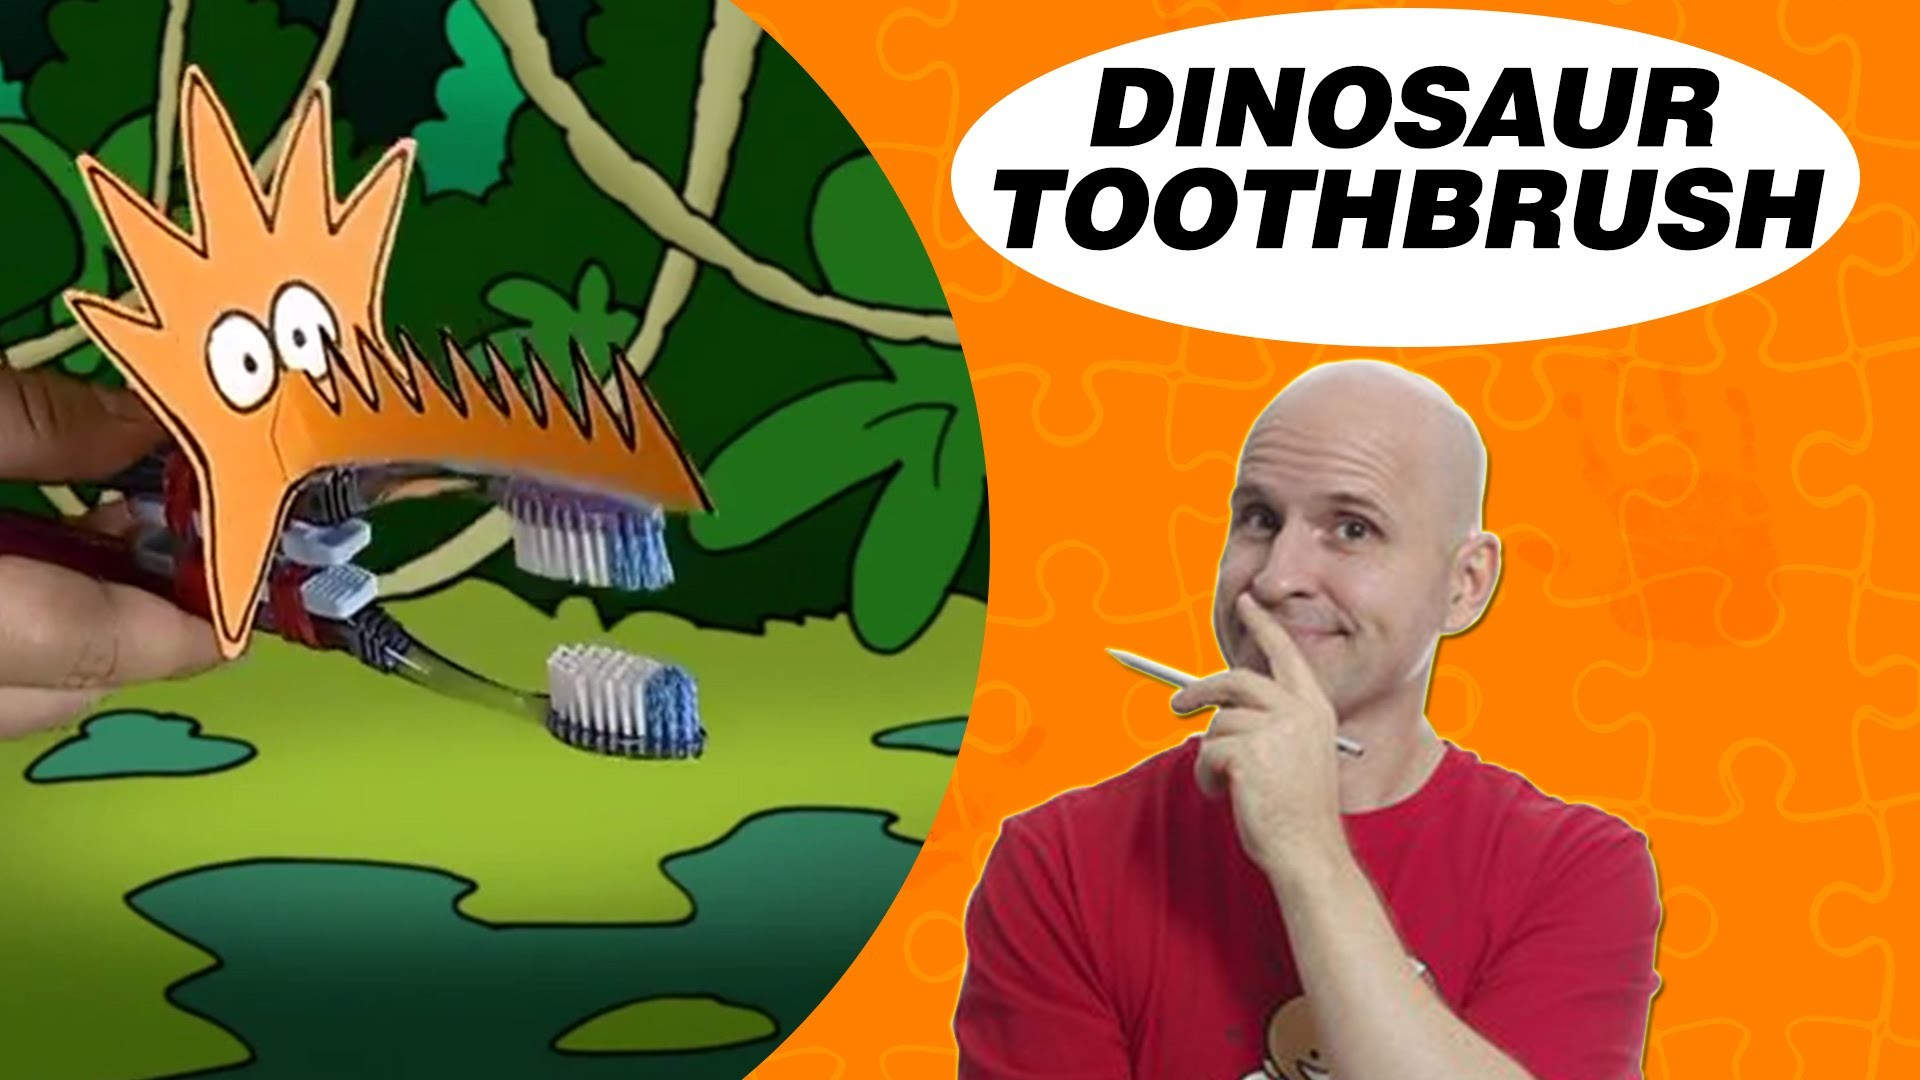 Crafts Ideas for Kids - Dinosaur Toothbrush | DIY on BoxYourSelf